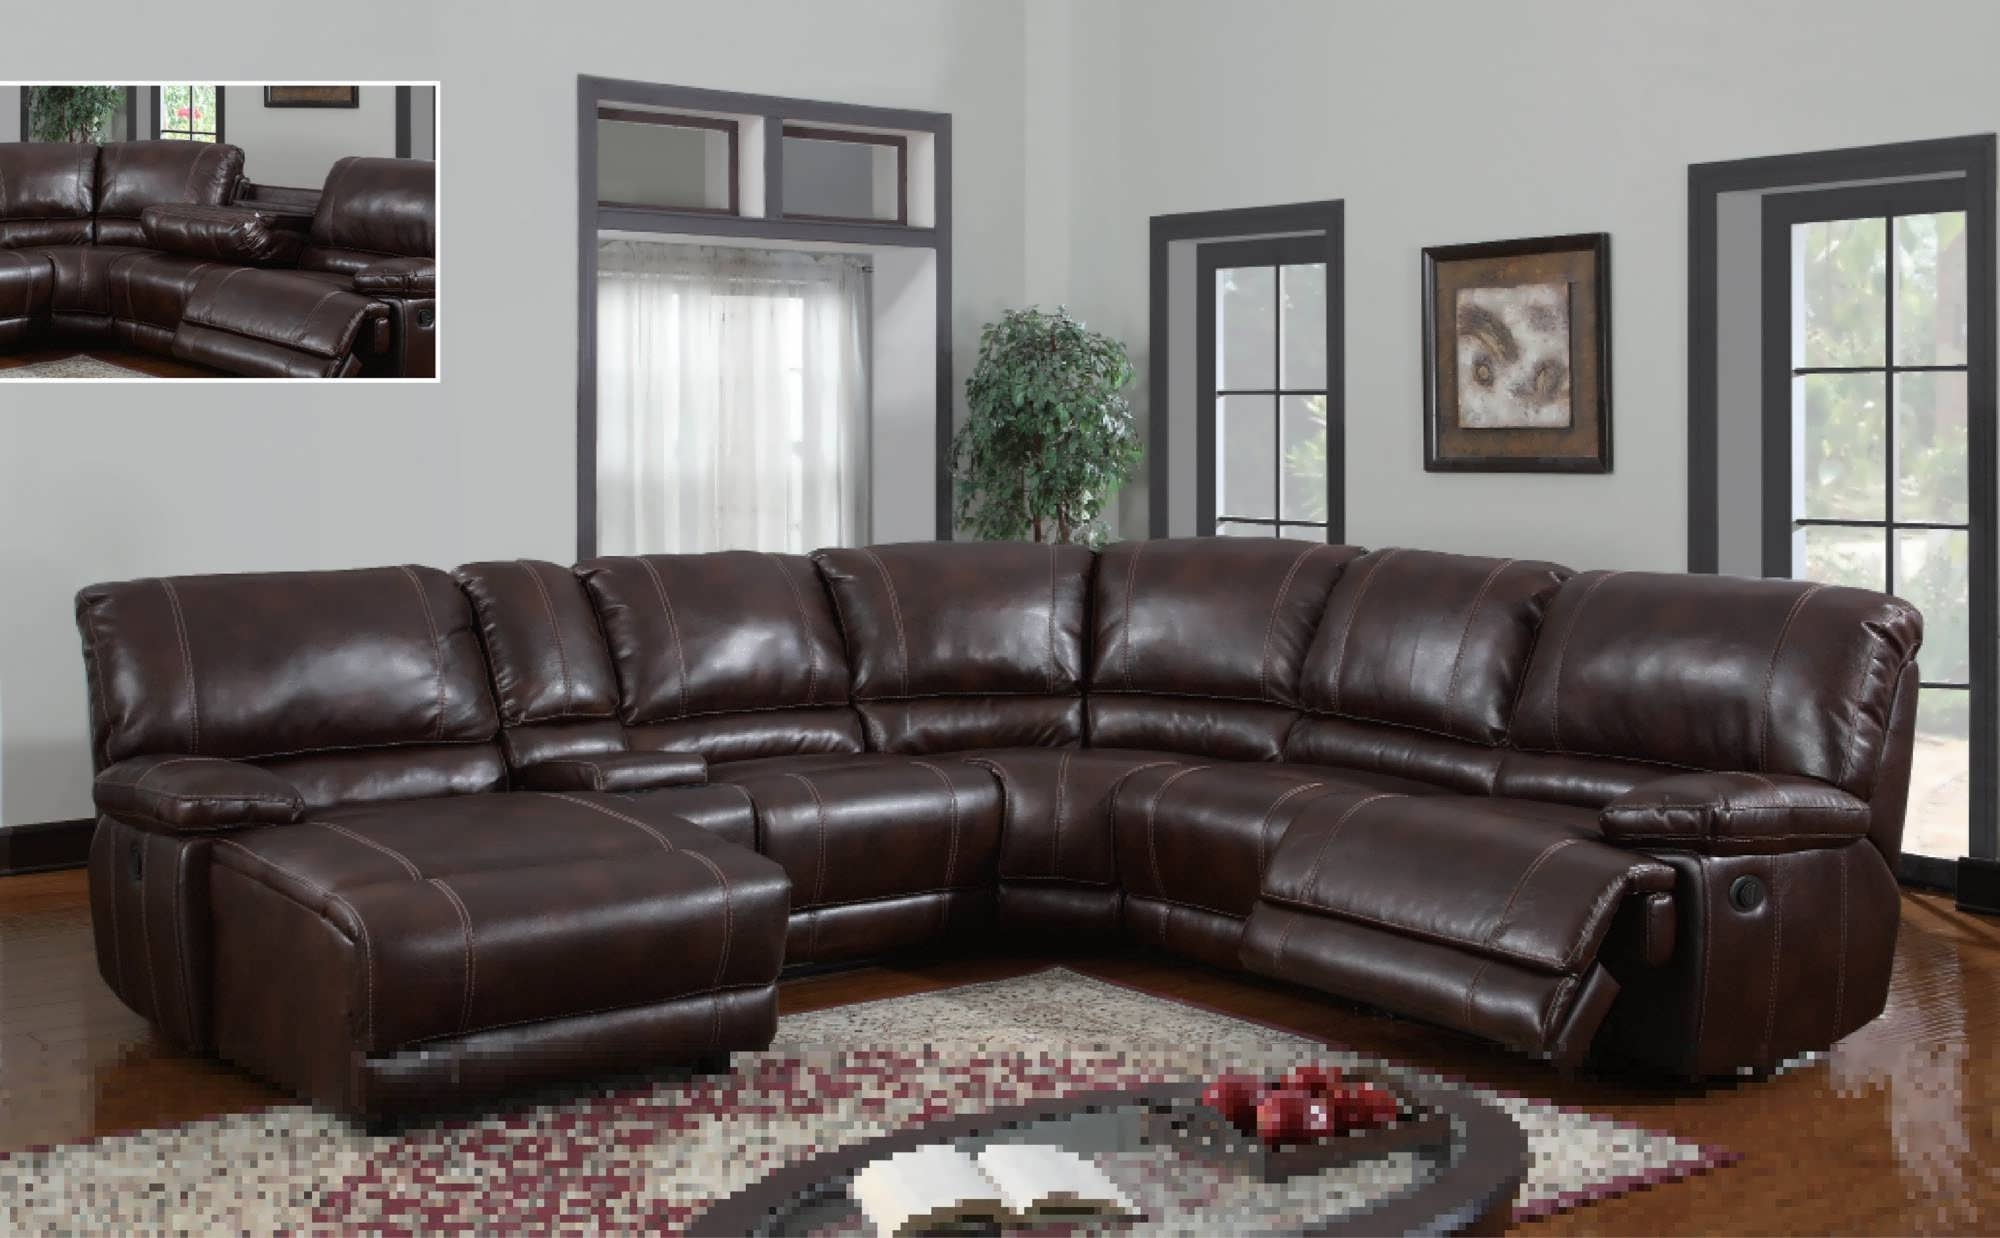 Current Leather Sectionals With Chaise And Recliner Throughout Sofa : Chaise Sofa L Shaped Couch With Recliner U Shaped Sofa U (View 11 of 15)